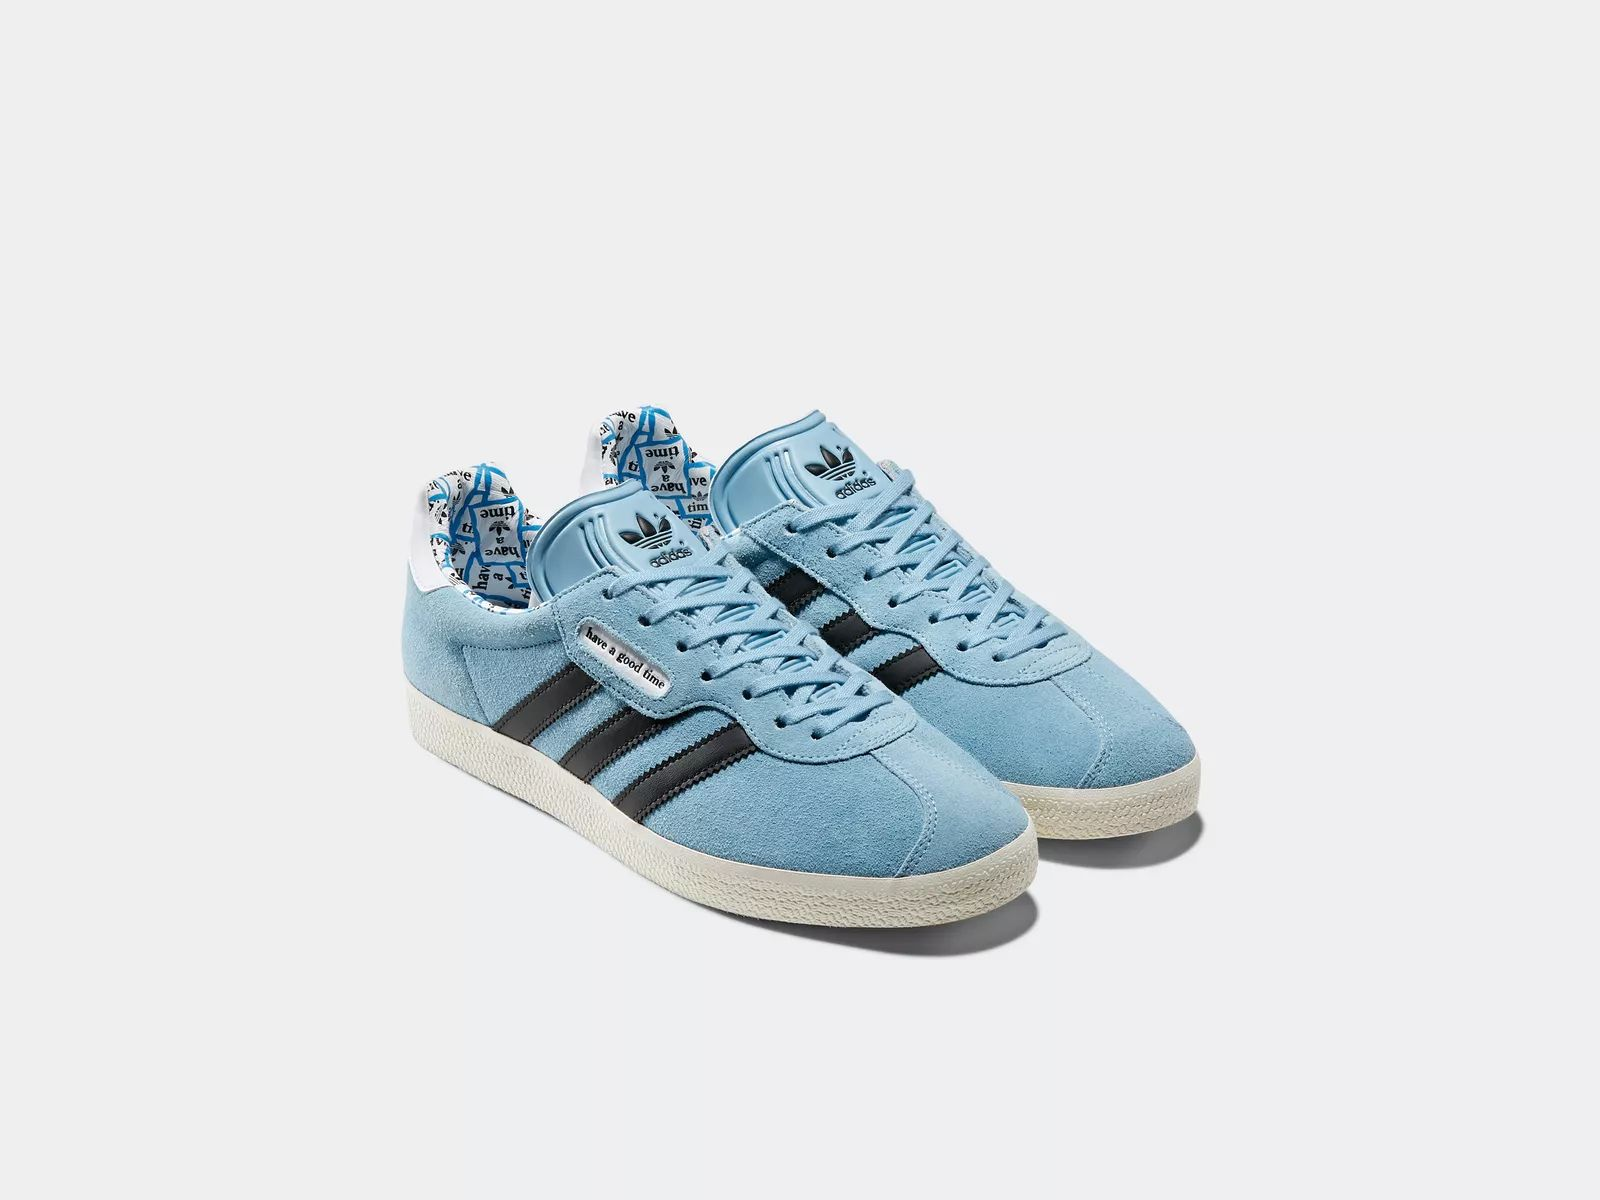 have-a-good-time-adidas-2nd-collaboration-release-20190119